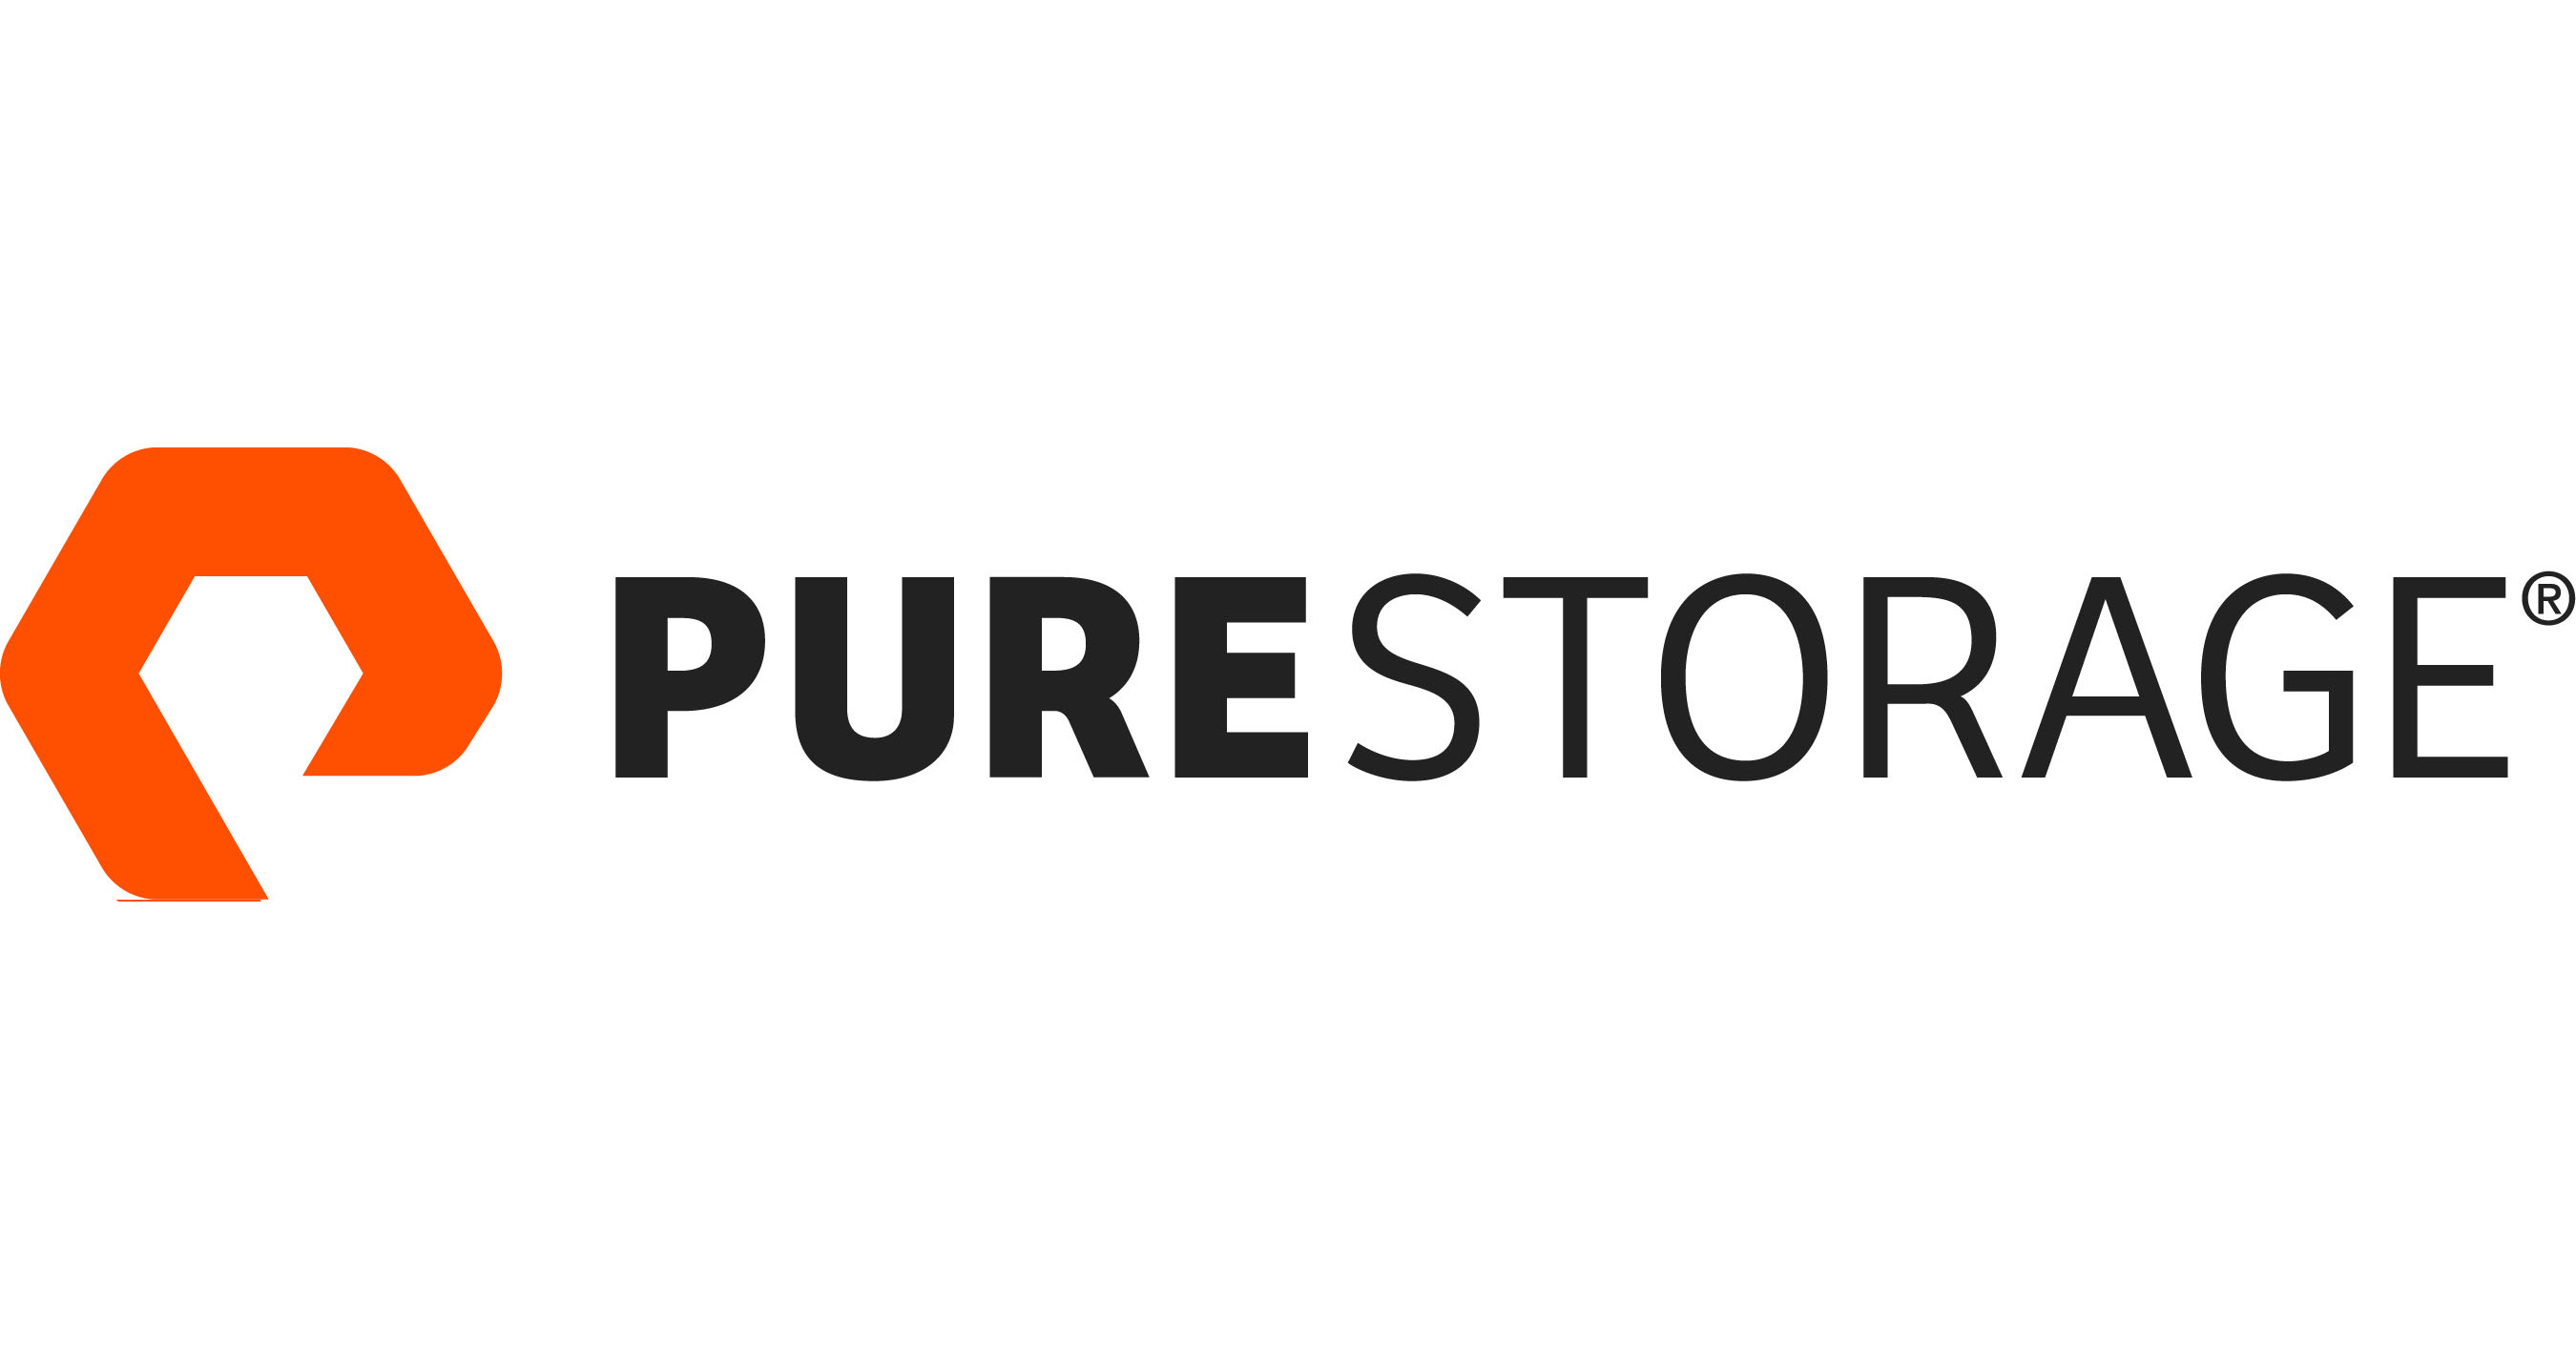 Pure Storage Unveils Purity 6.0 for FlashArray, Delivering Agile Data Services to Enable the Modern User Experience